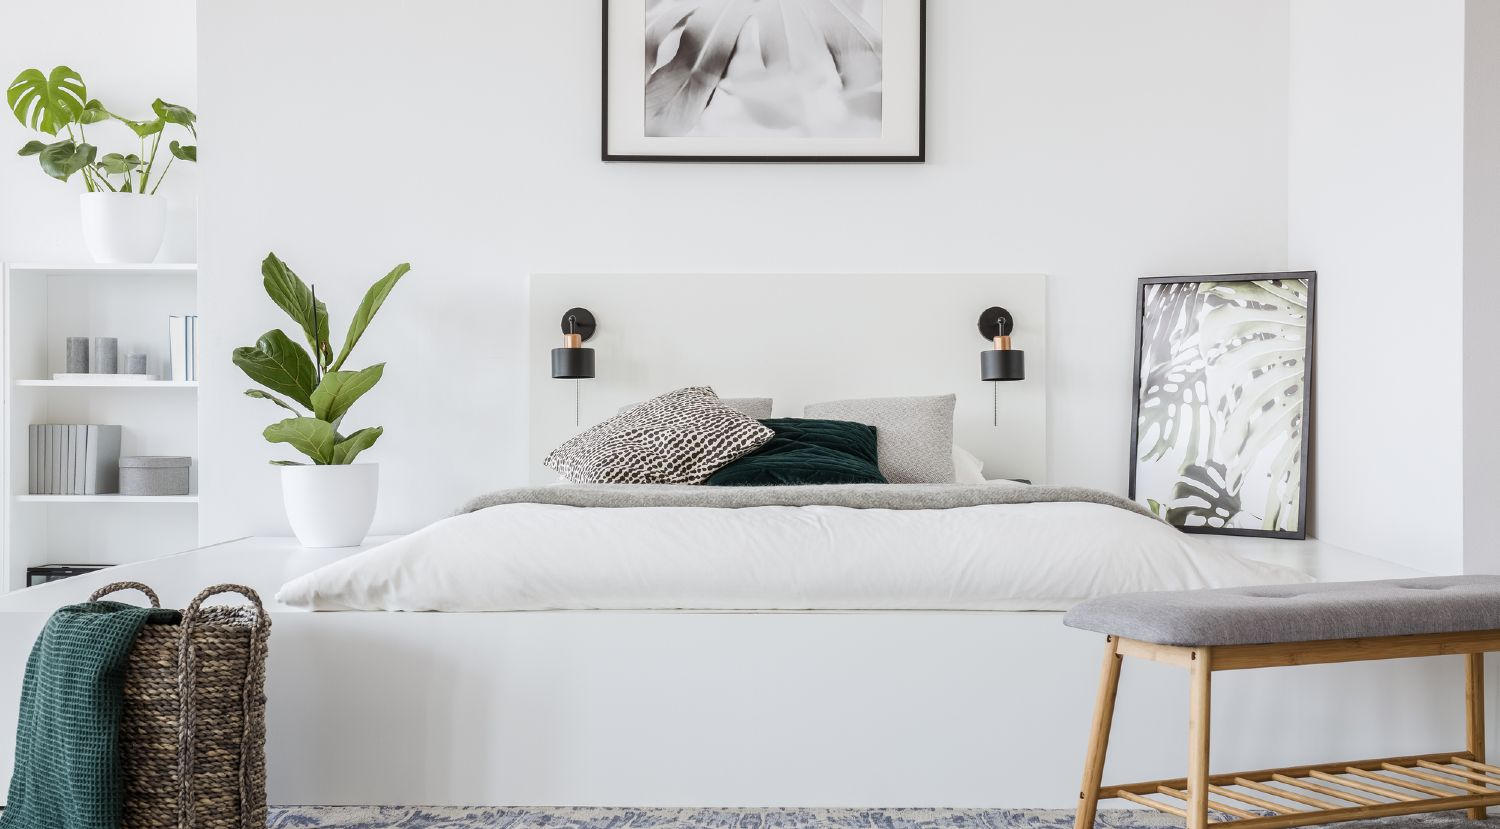 Small bright bedroom neatly organized and clean